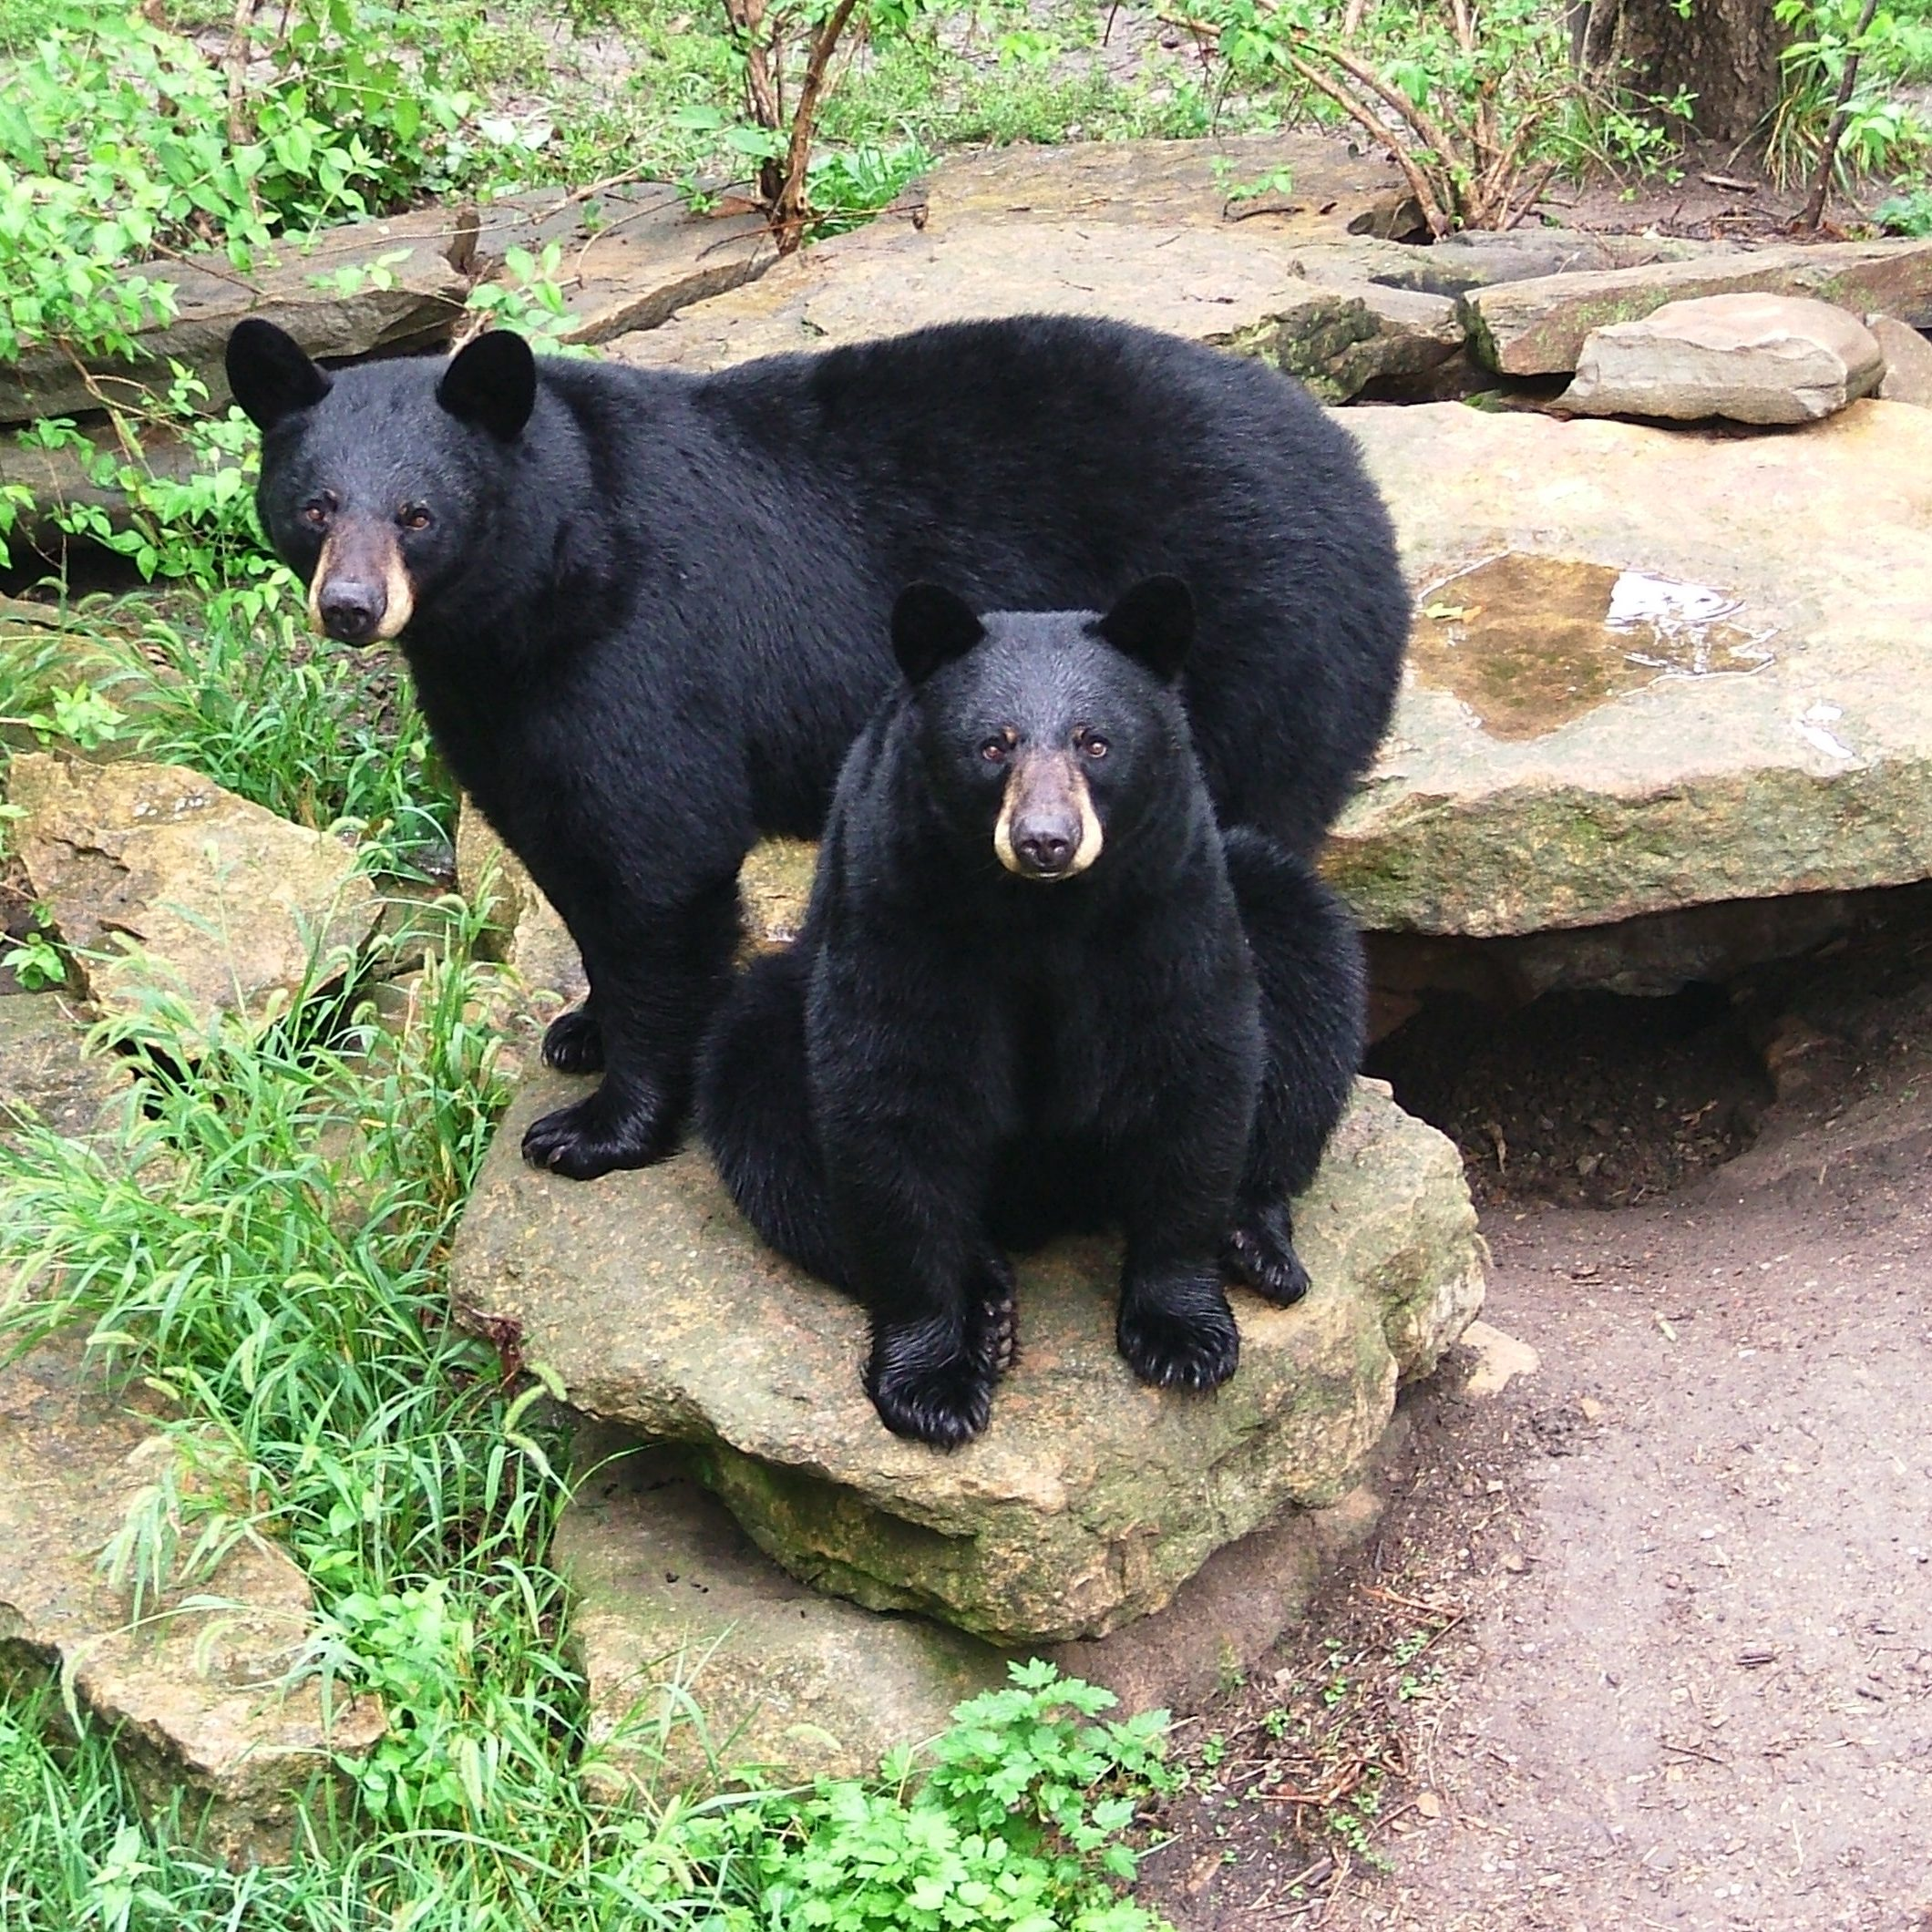 Sneak and Peak, the first bears to reside in Hills Black Bear Woods, which opened in 1996.